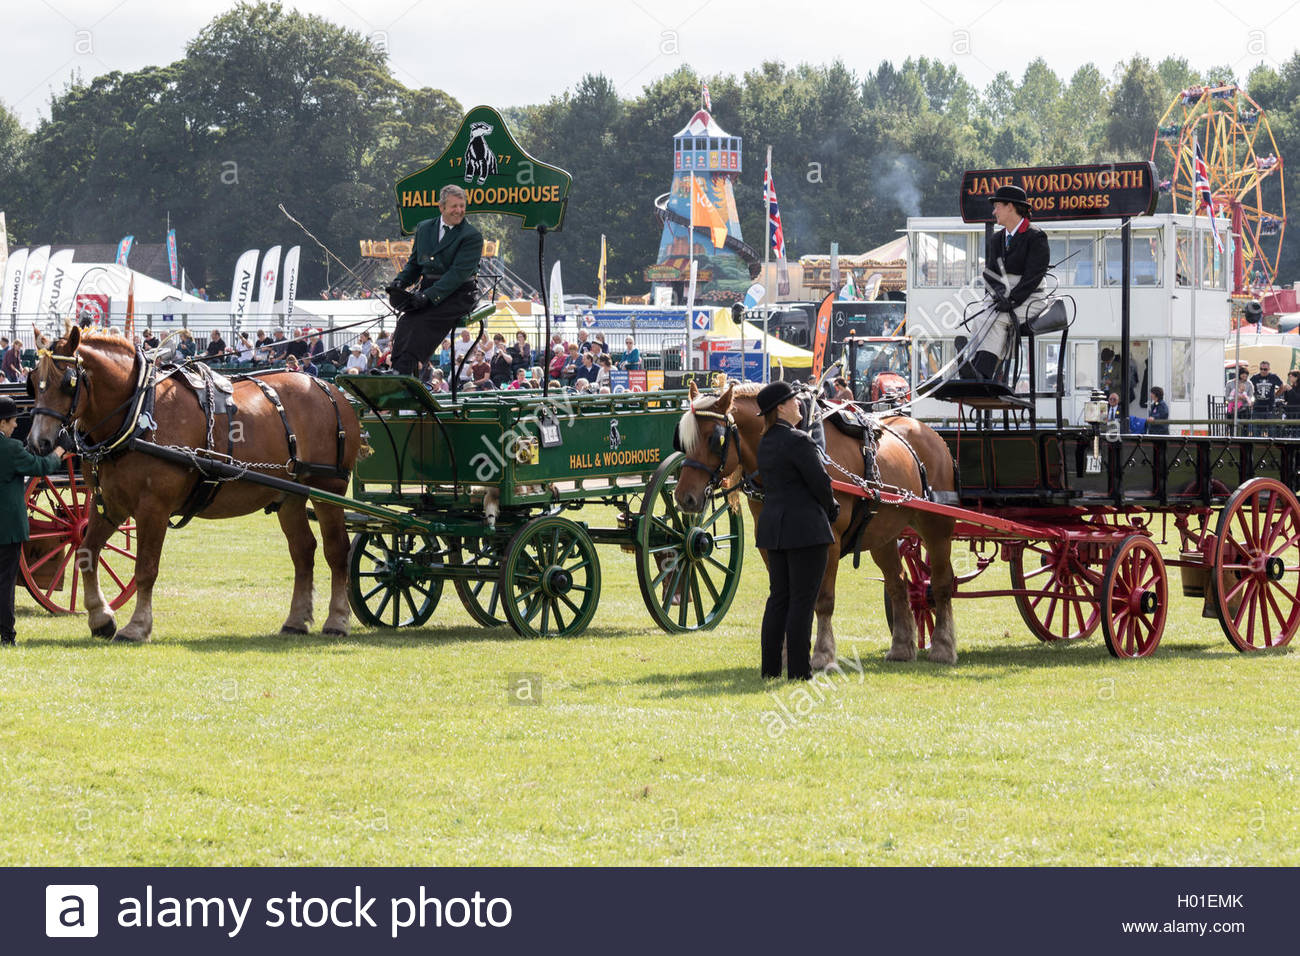 Two heavy (draught) horses and trade wagons exhibiting at the Royal Berkshire County Show - Stock Image